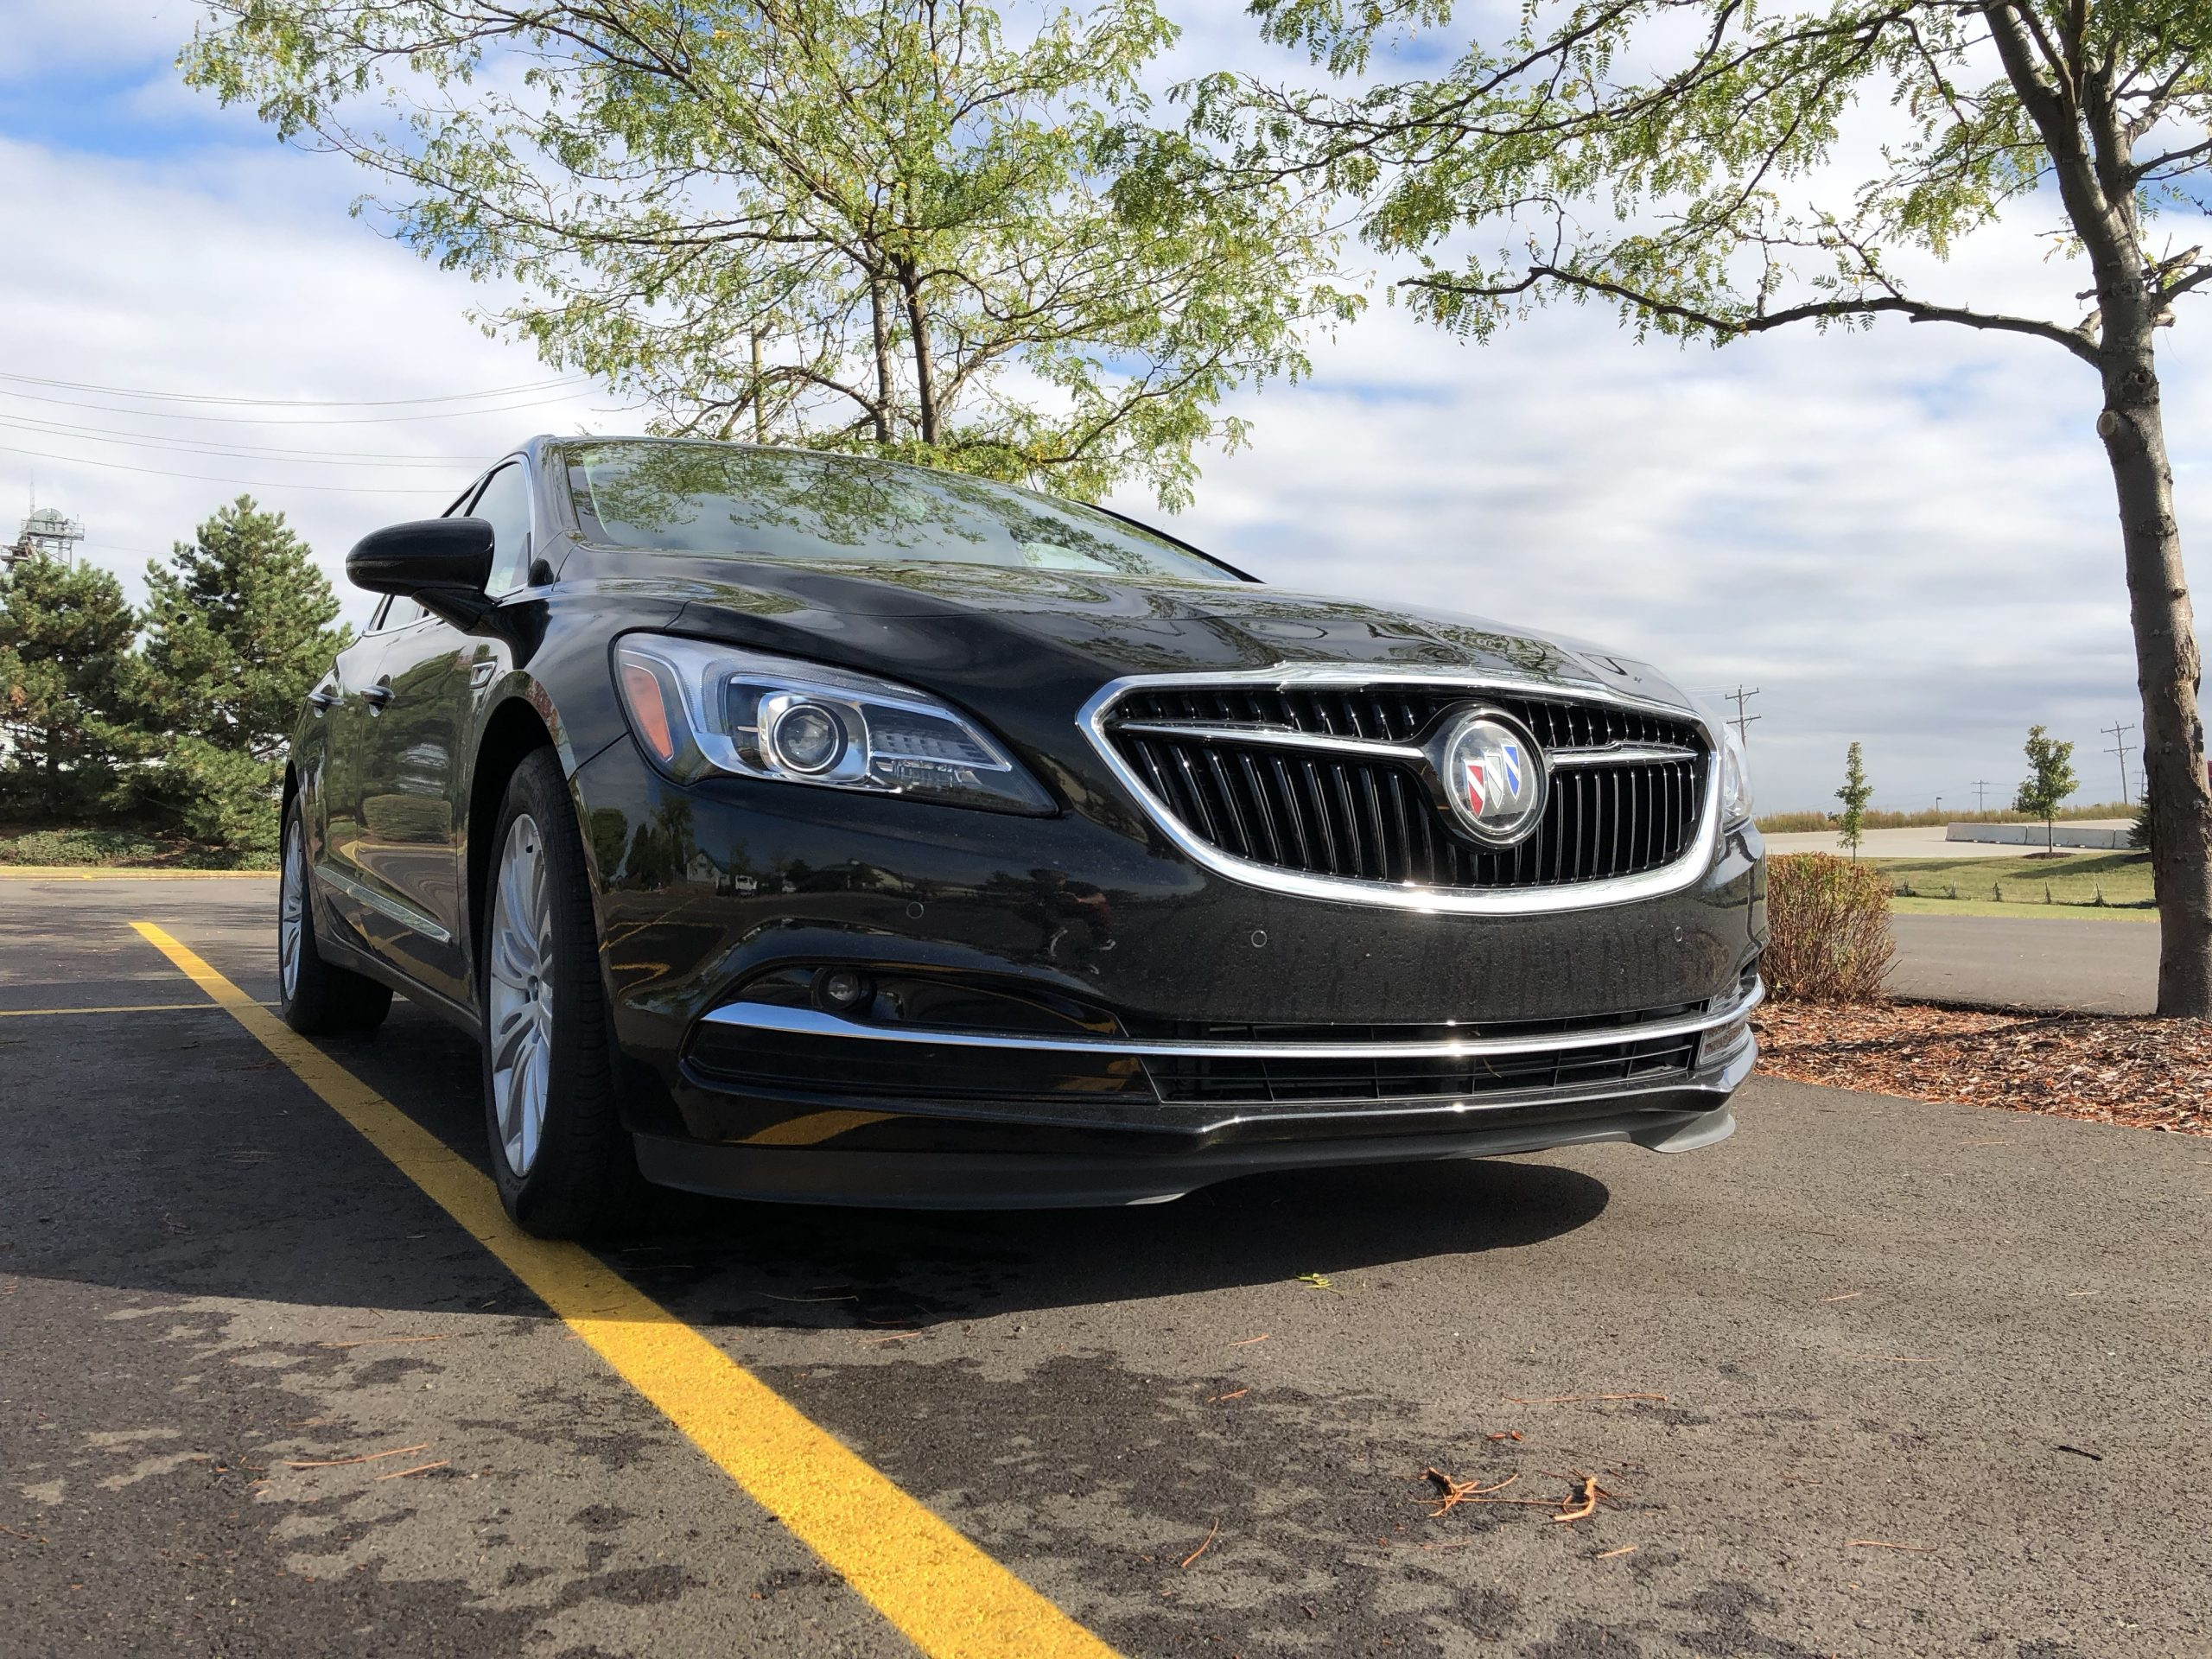 2019 Buick Lacrosse Gets New Colors, Sport Touring Model New 2022 Buick Lacrosse Lease, Reviews, Msrp